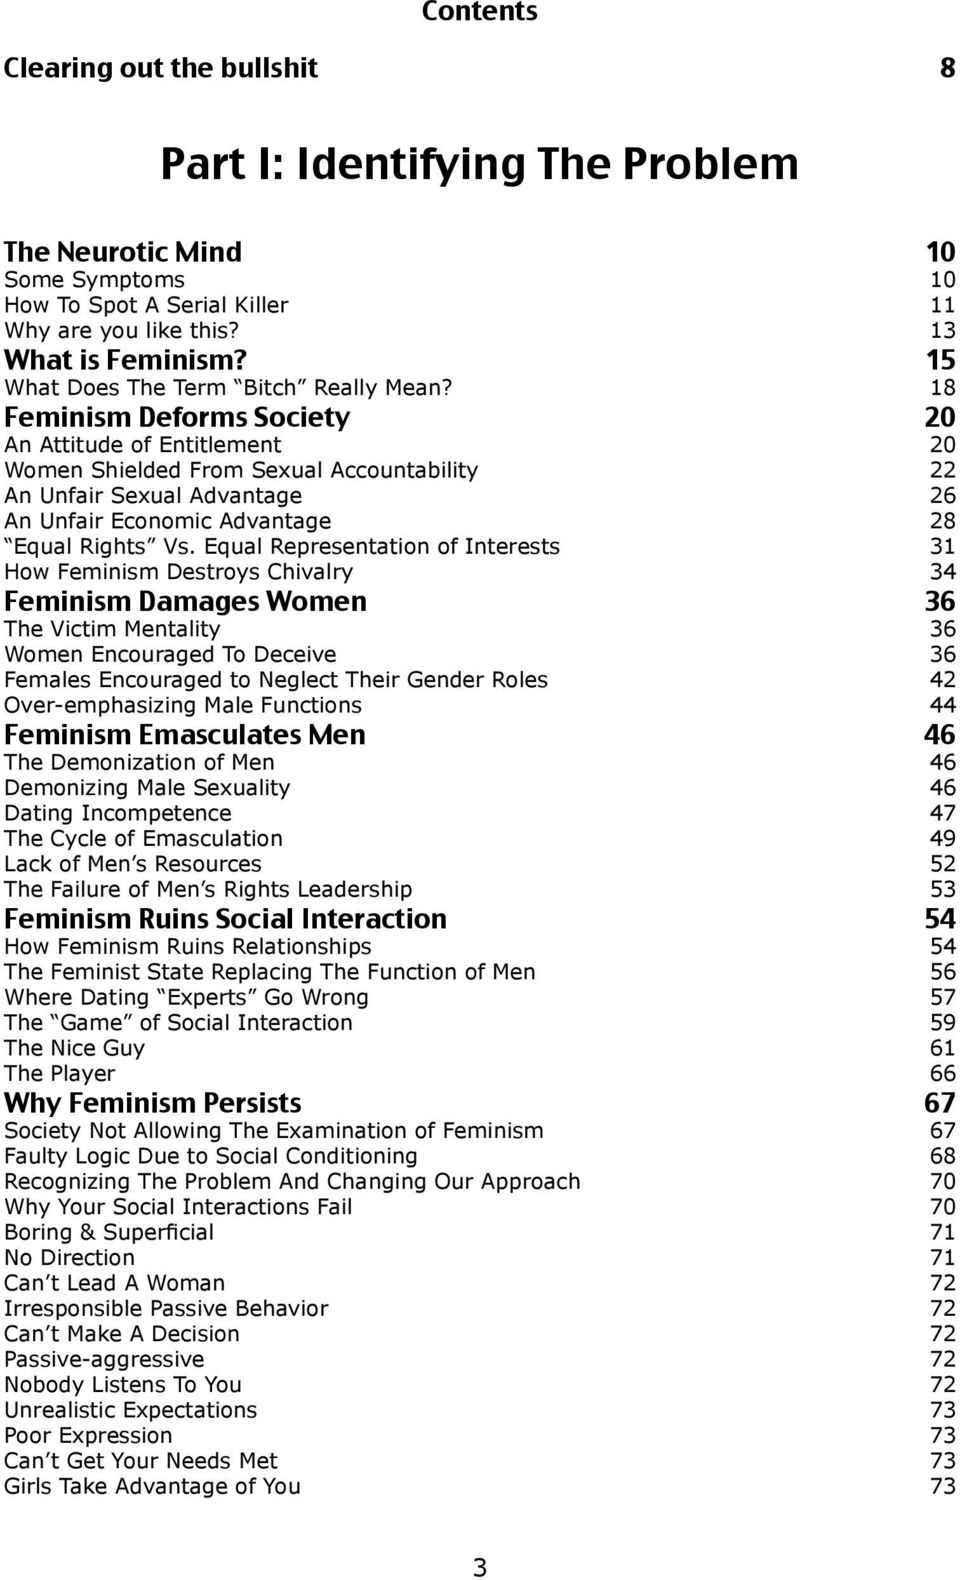 Equal Representation of Interests 31 How Feminism Destroys Chivalry 34 The Victim Mentality 36 Women Encouraged To Deceive 36 Females Encouraged to Neglect Their Gender Roles 42 Over-emphasizing Male